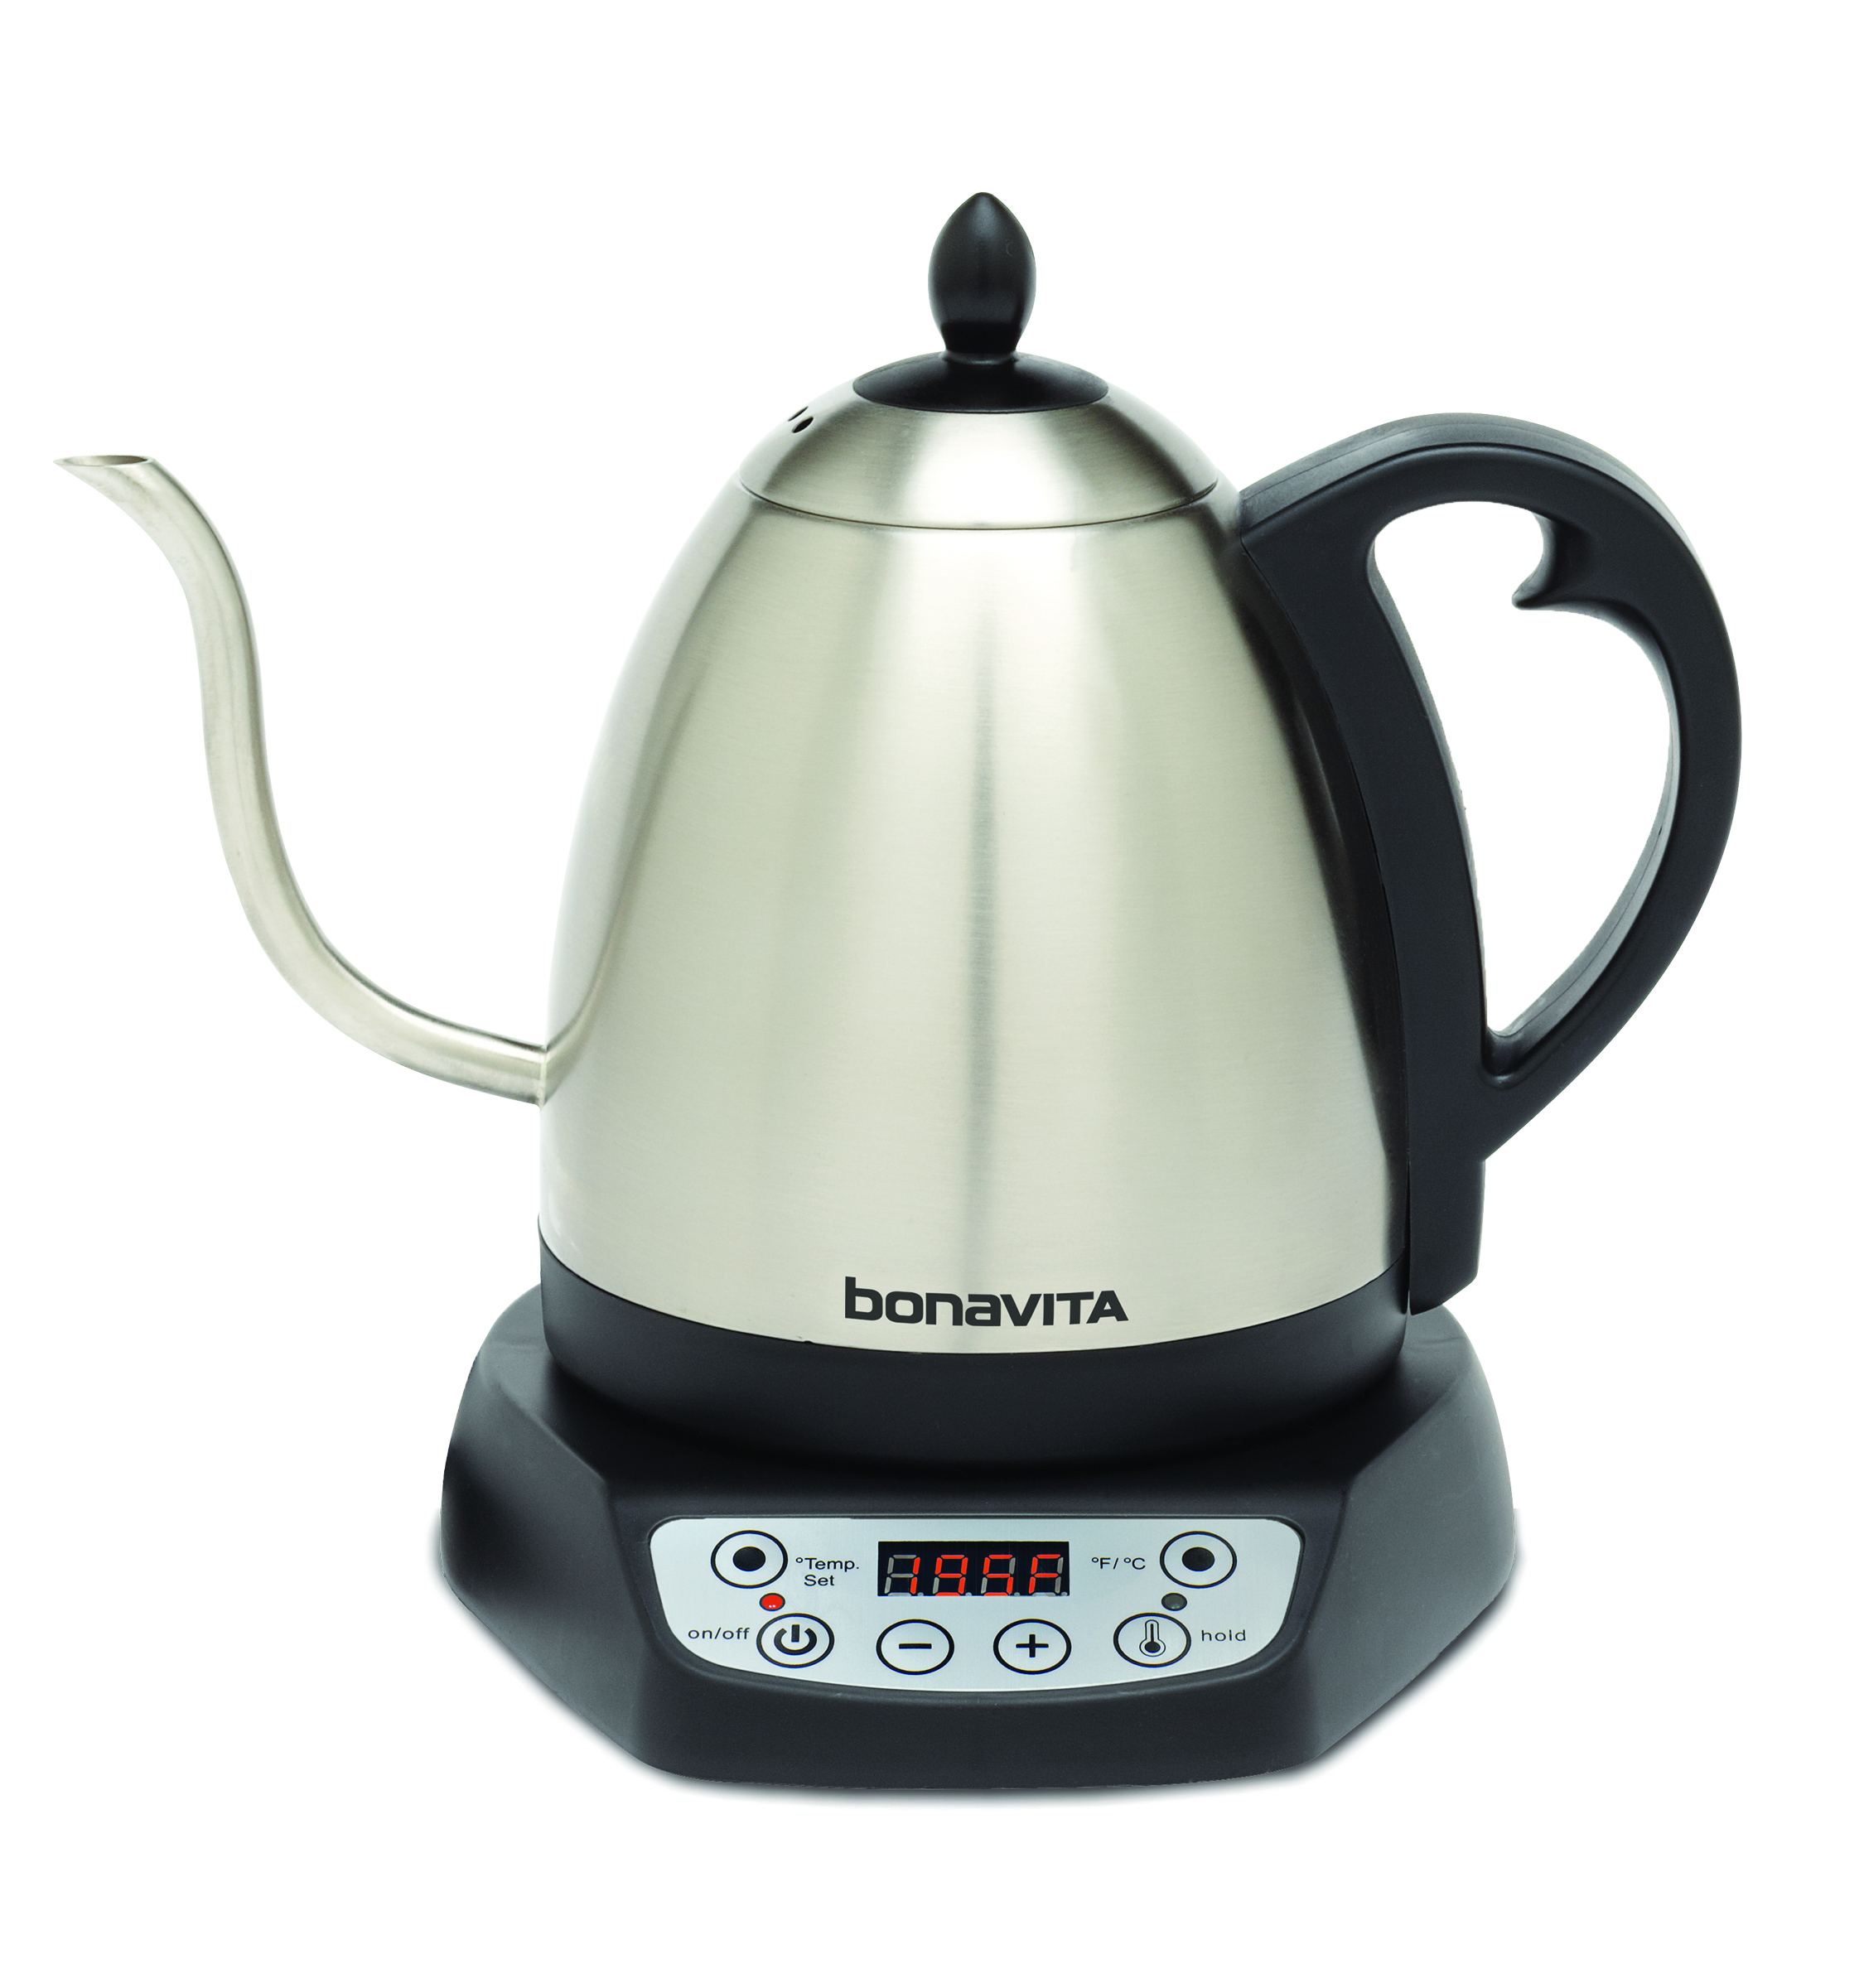 Coffee Brewers And Electric Kettles Kitchenware News Housewares Syphon Maker 10l Digital Variable Temperature Gooseneck Kettle